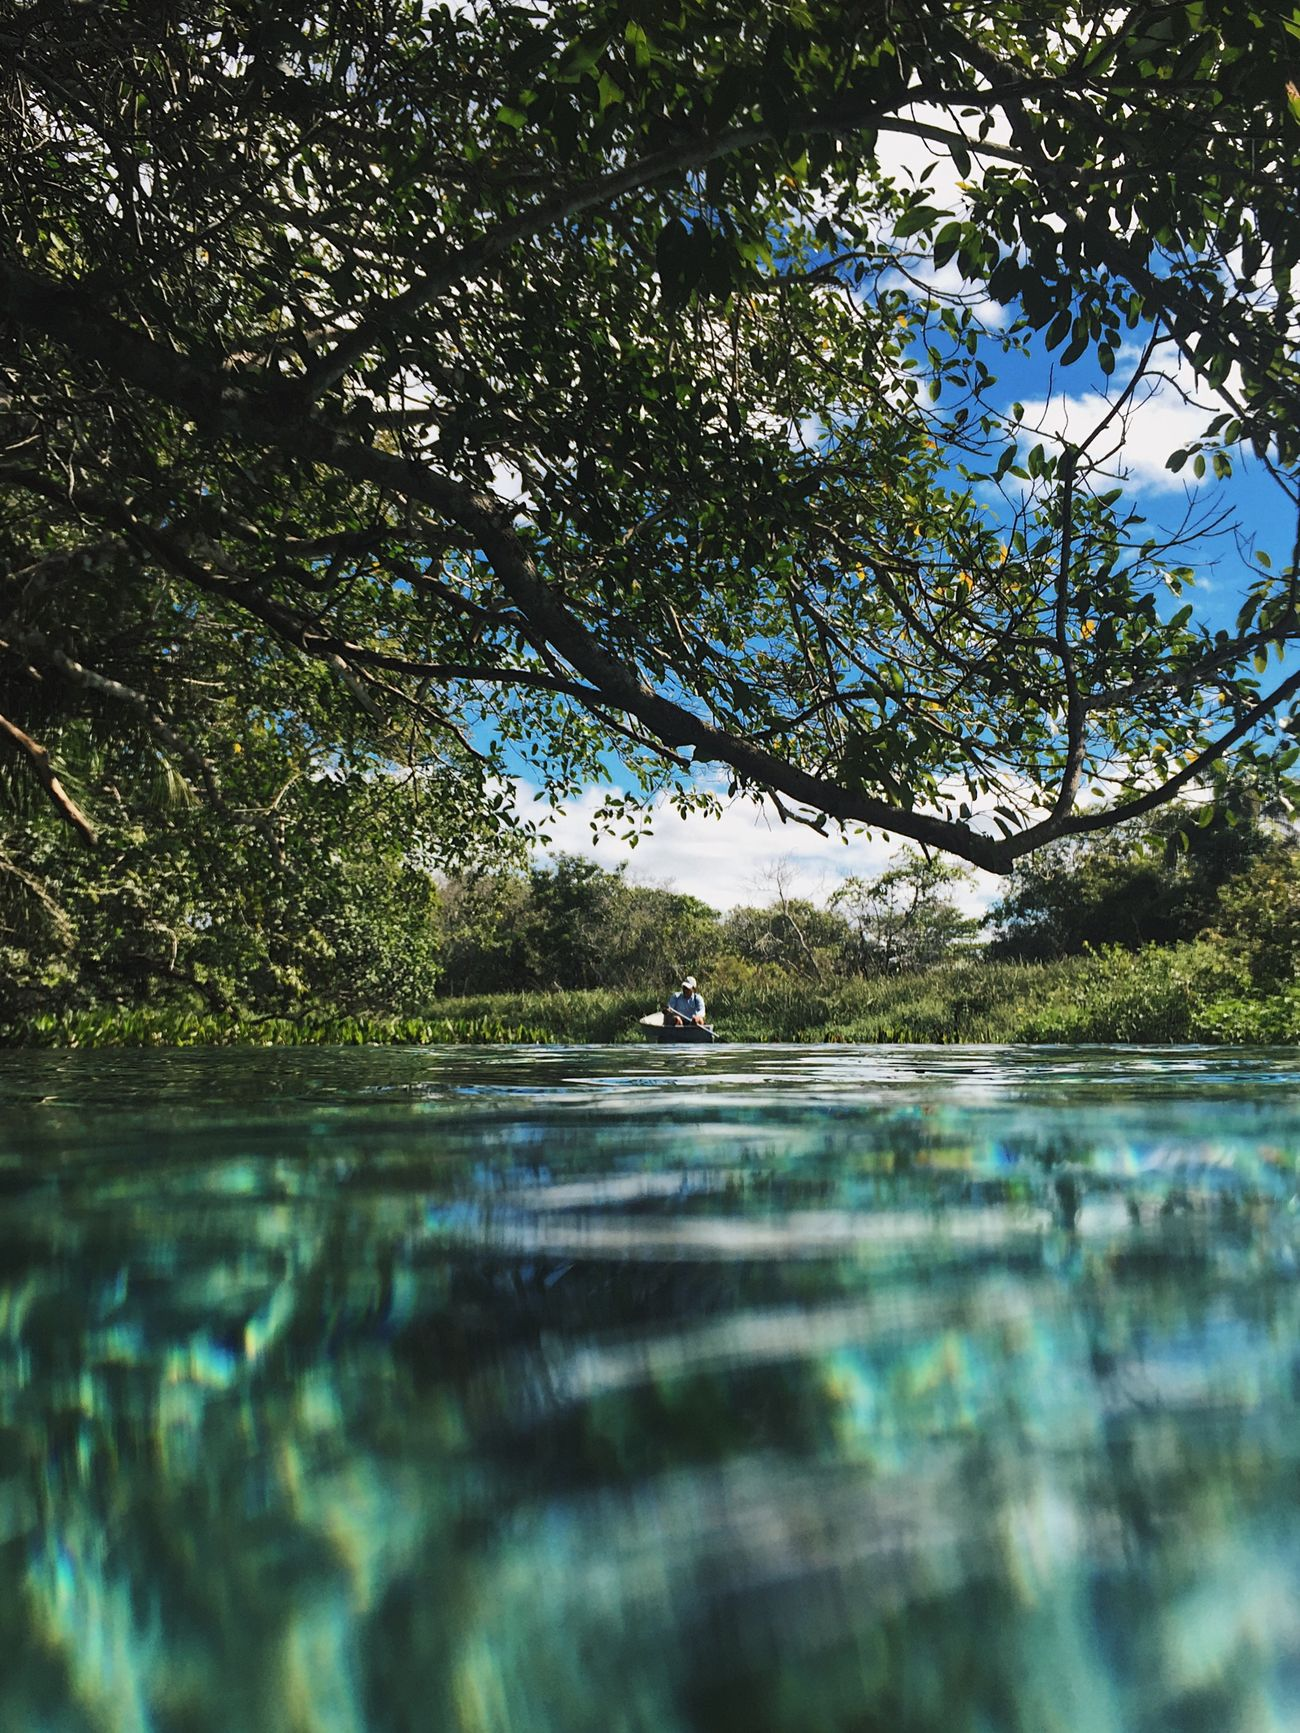 Tree Nature Water Outdoors Reflection Scenics Bonito Brazil Sucuri Crystal Clear Waters Boat Turism Amazing View Underwater Nature Bonito - MS Matogrosso The Great Outdoors - 2017 EyeEm Awards